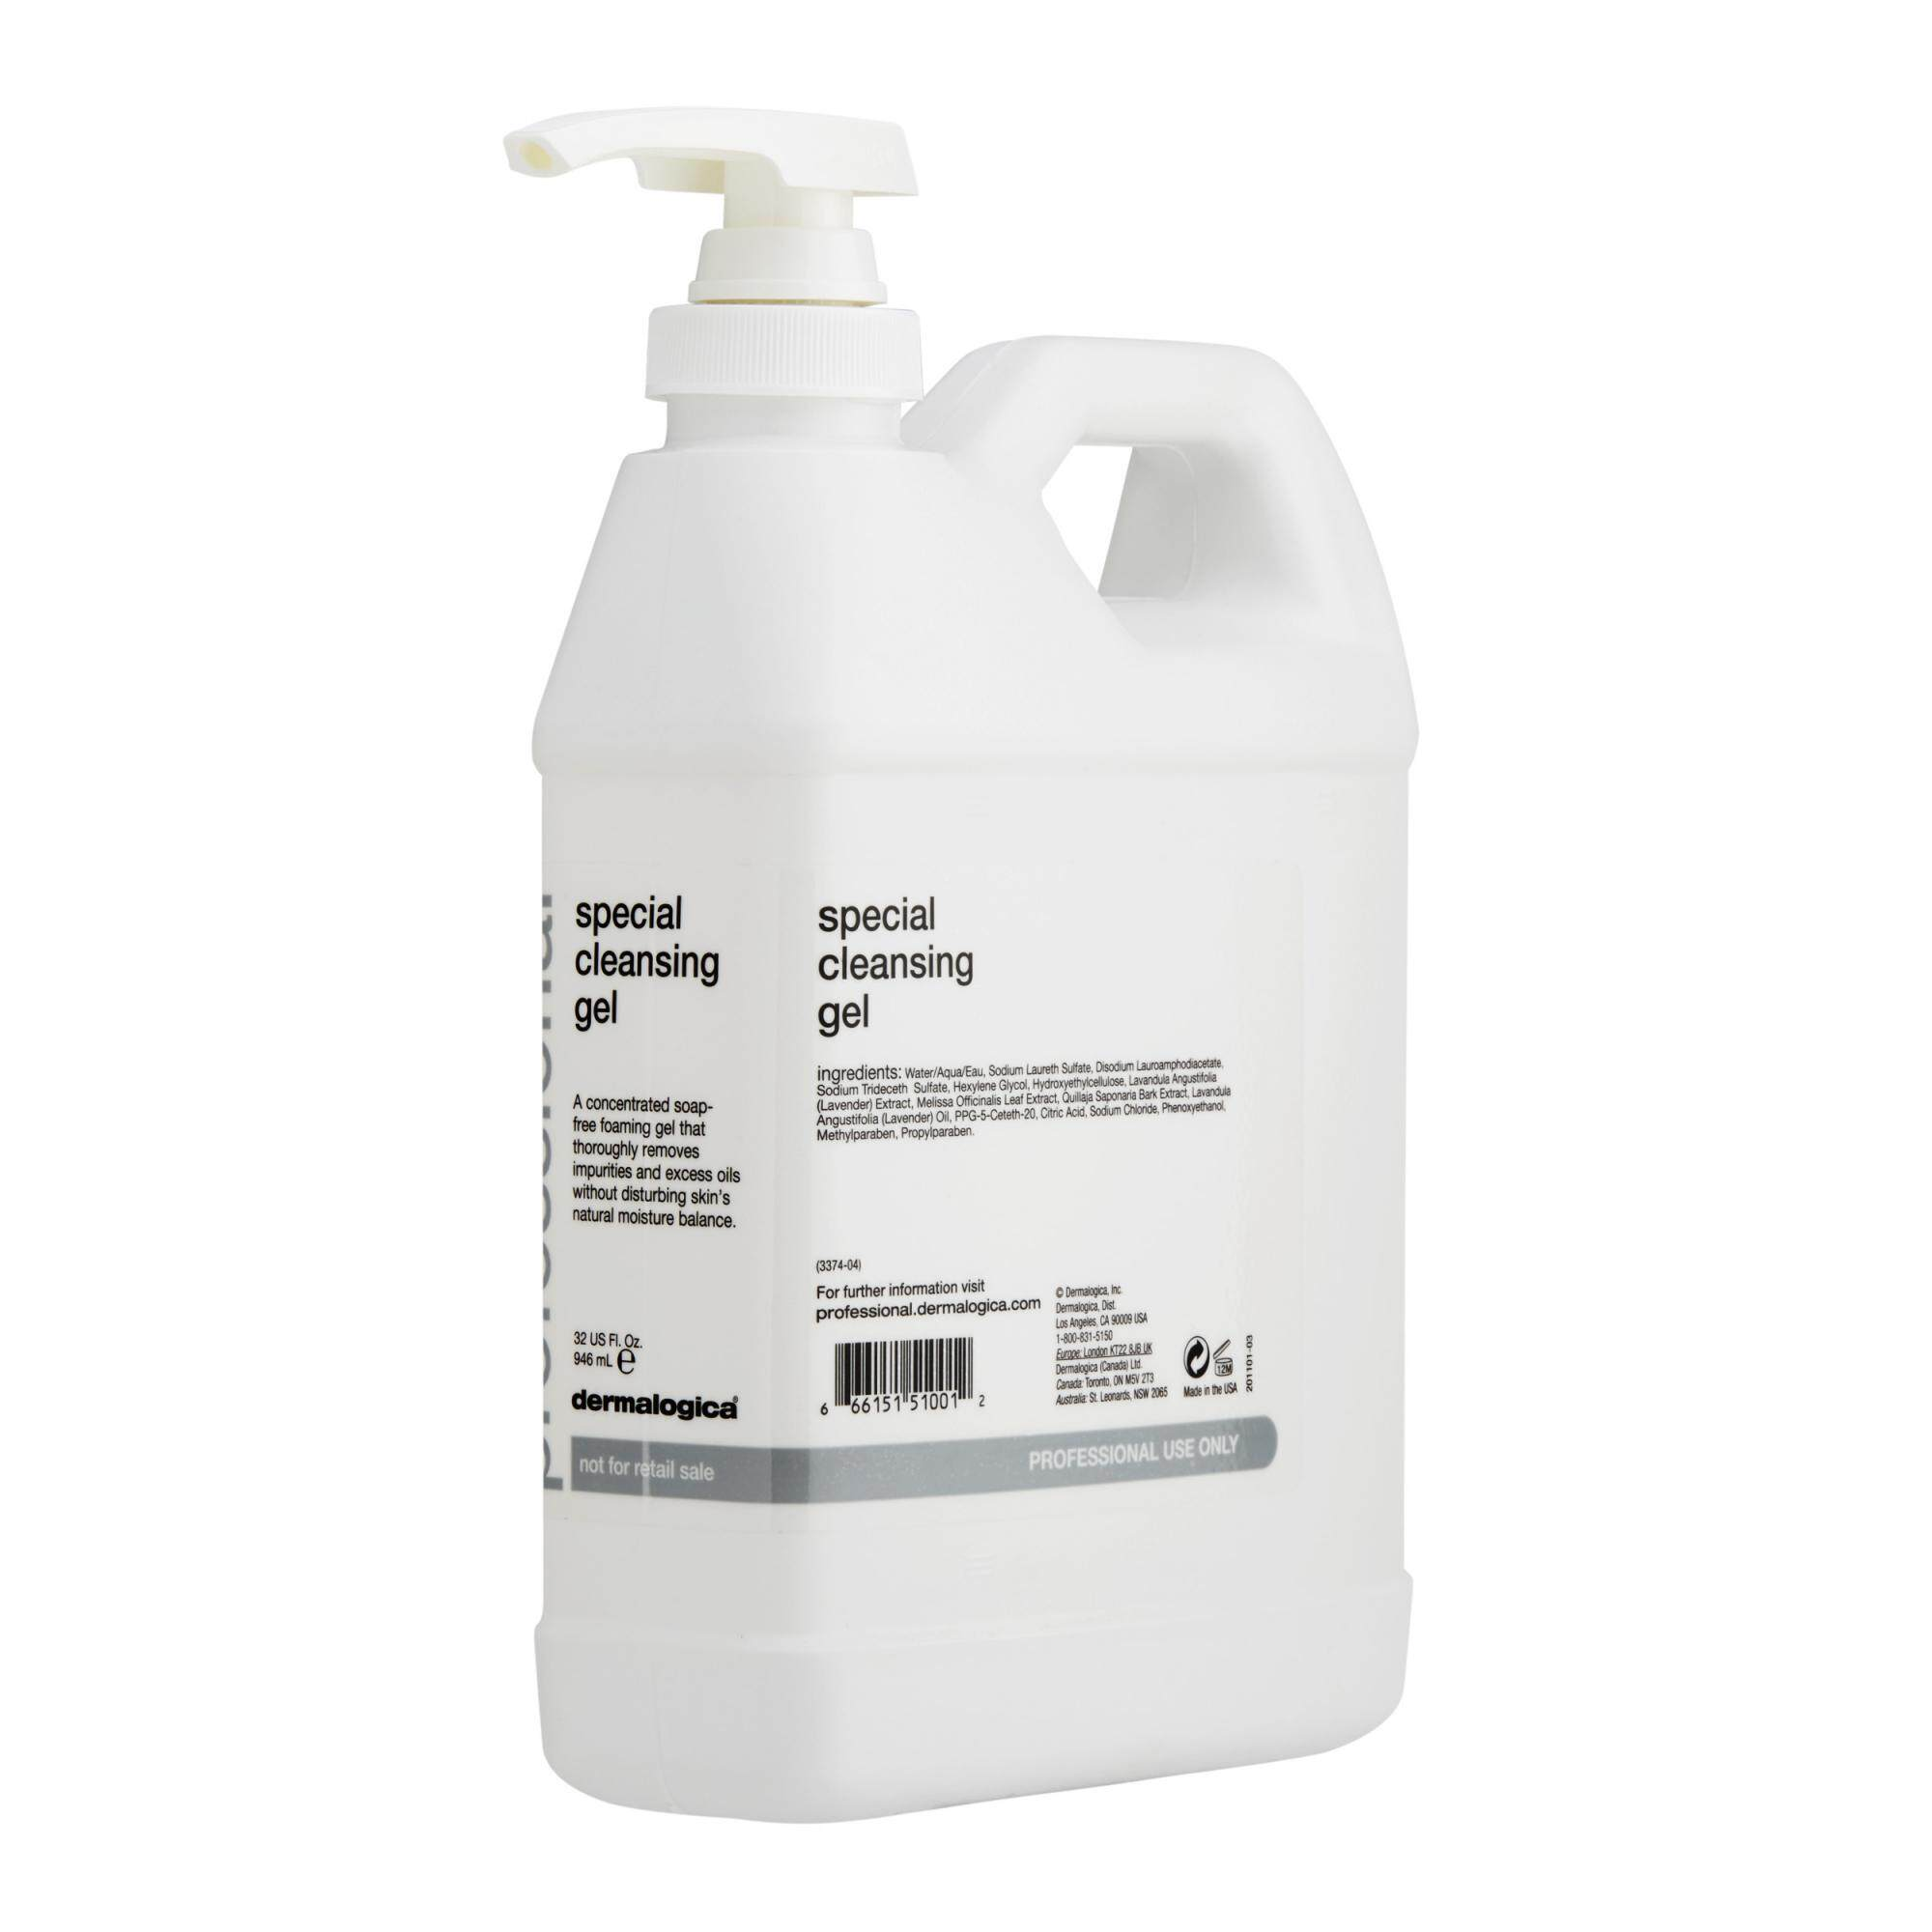 Home · Bali Balance Night Oil 35. Source · Dermalogica Special Cleansing Gel 946ml/32oz (Professional Size)